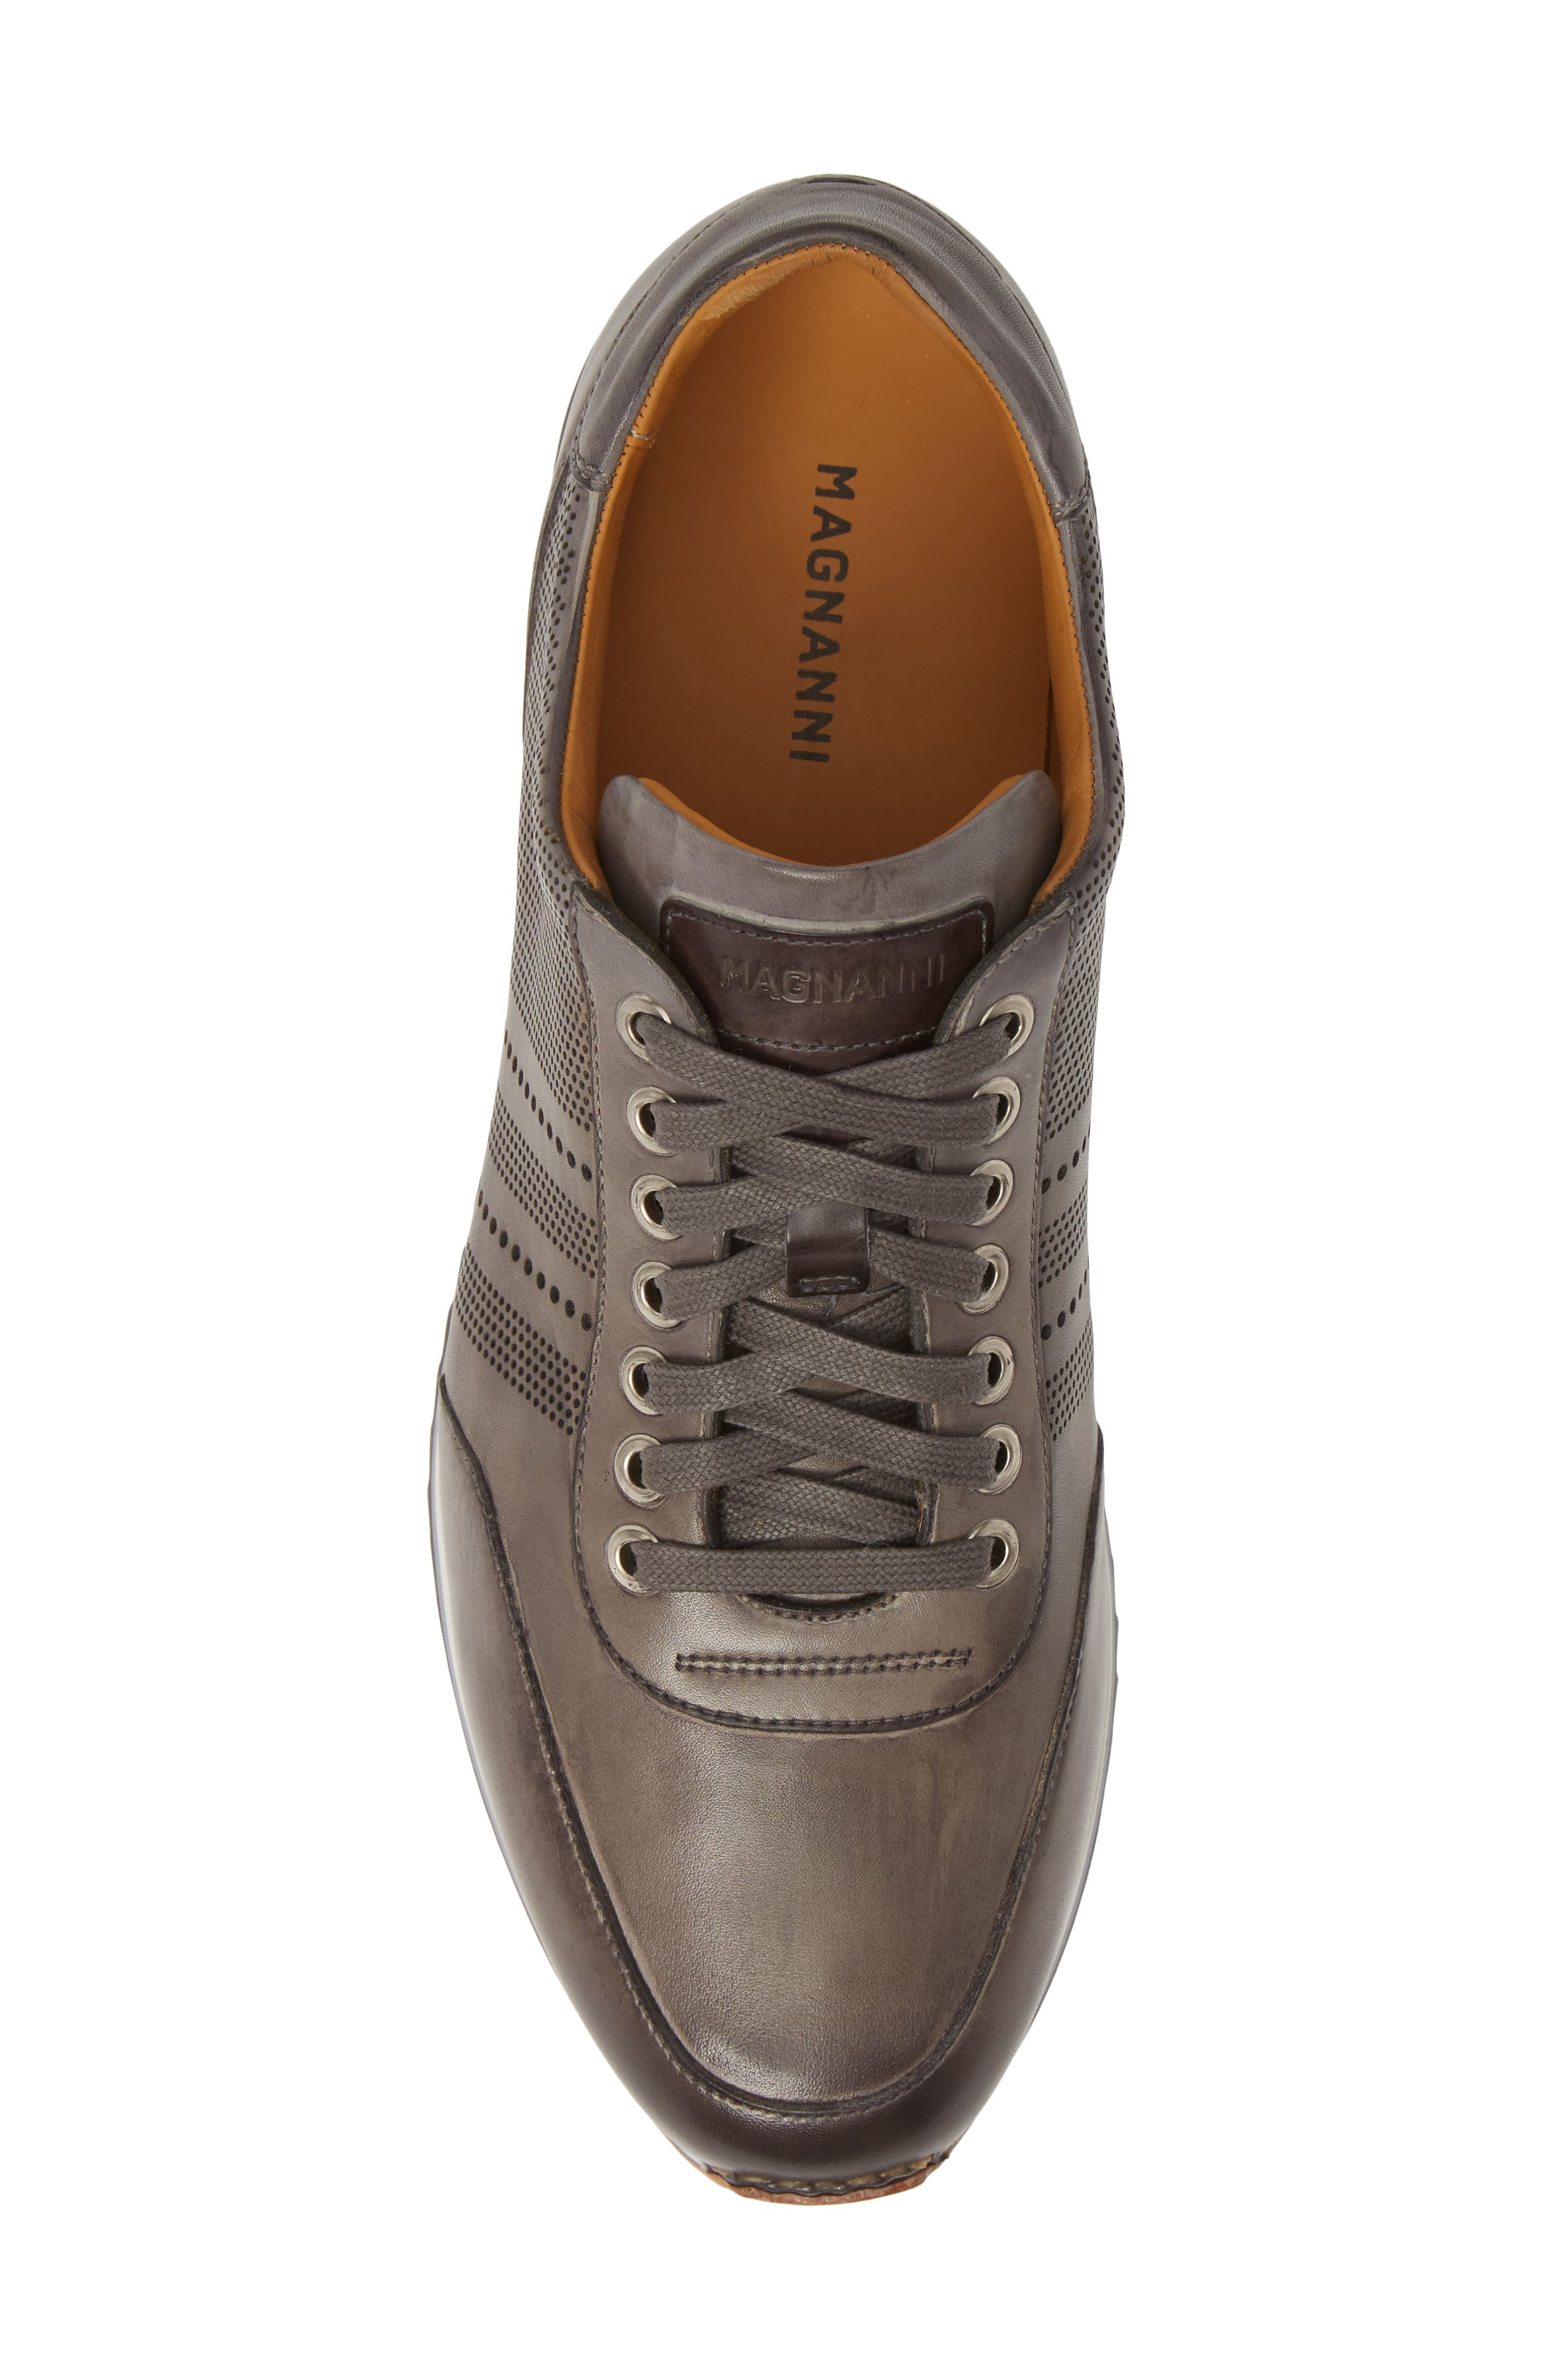 MAGNANNI, Merino Sneaker, Alternate thumbnail 5, color, GREY LEATHER